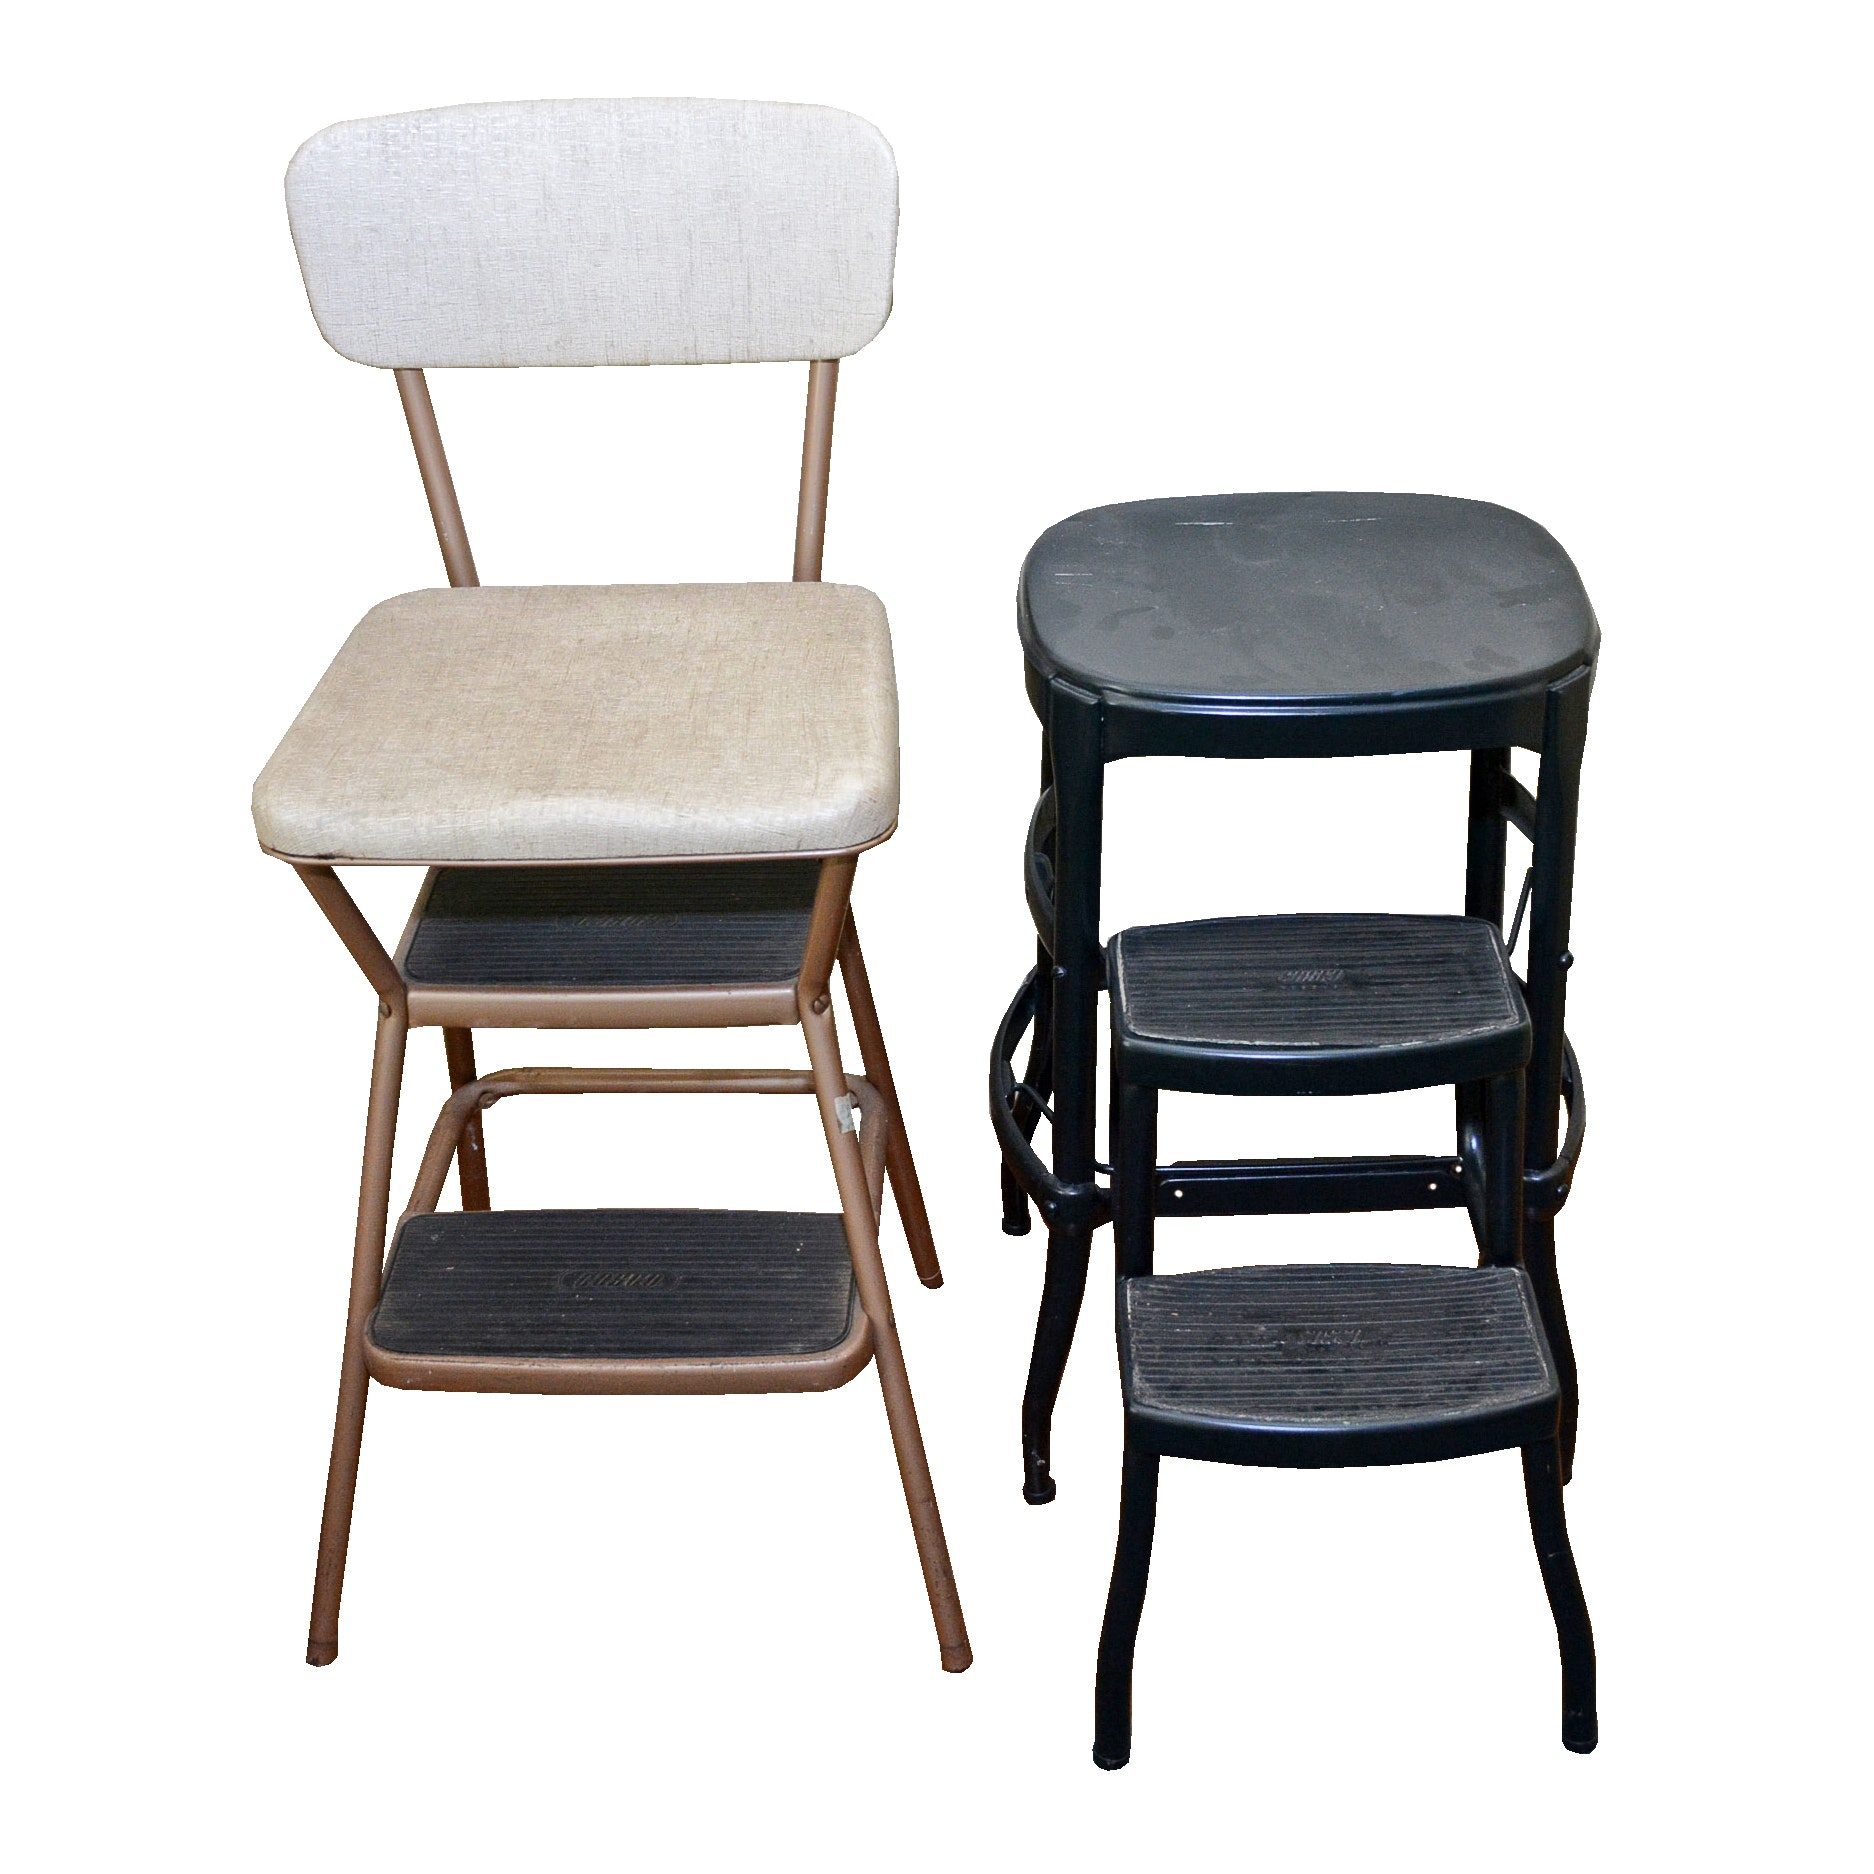 Vintage Cosco Step Stool Chairs ...  sc 1 st  Everything But The House : step stool chairs - islam-shia.org